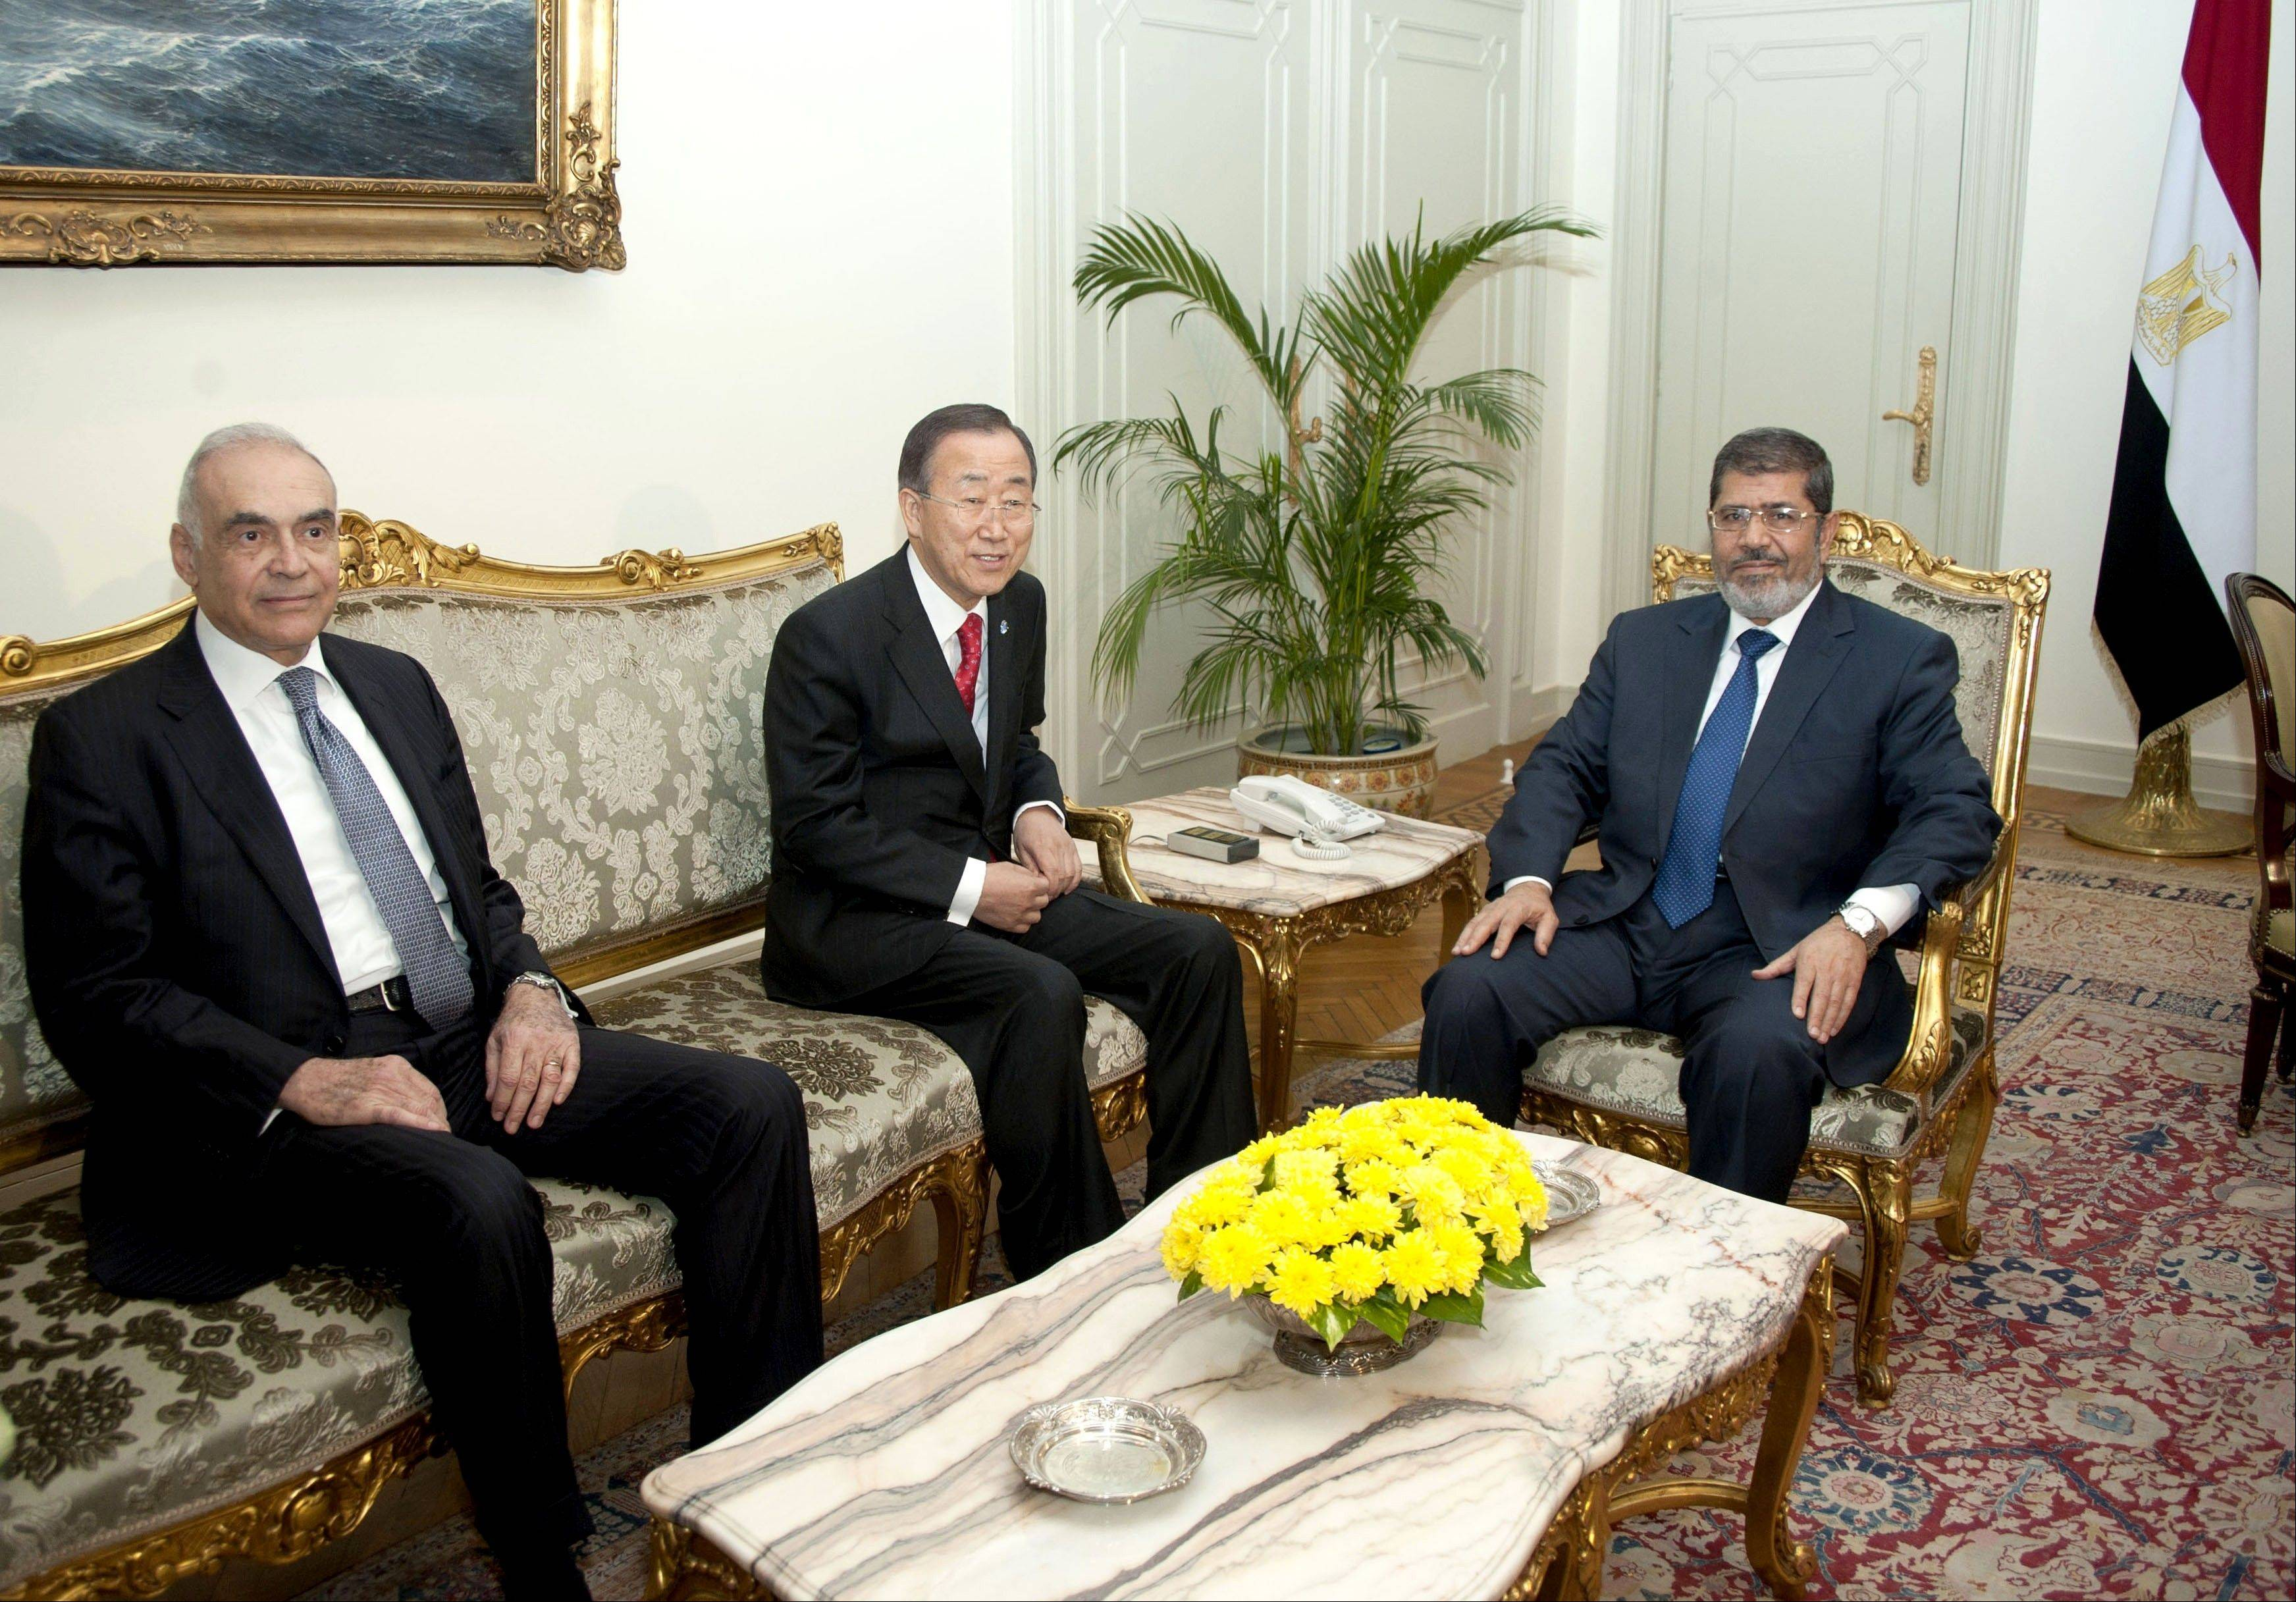 U.N. Secretary-General Ban Ki-moon, center, poses for photographers during his meeting with Egyptian Foreign Minister Mohammed Kamel Amr, left, and President Mohammed Morsi, right, in Cairo, Egypt, Wednesday.